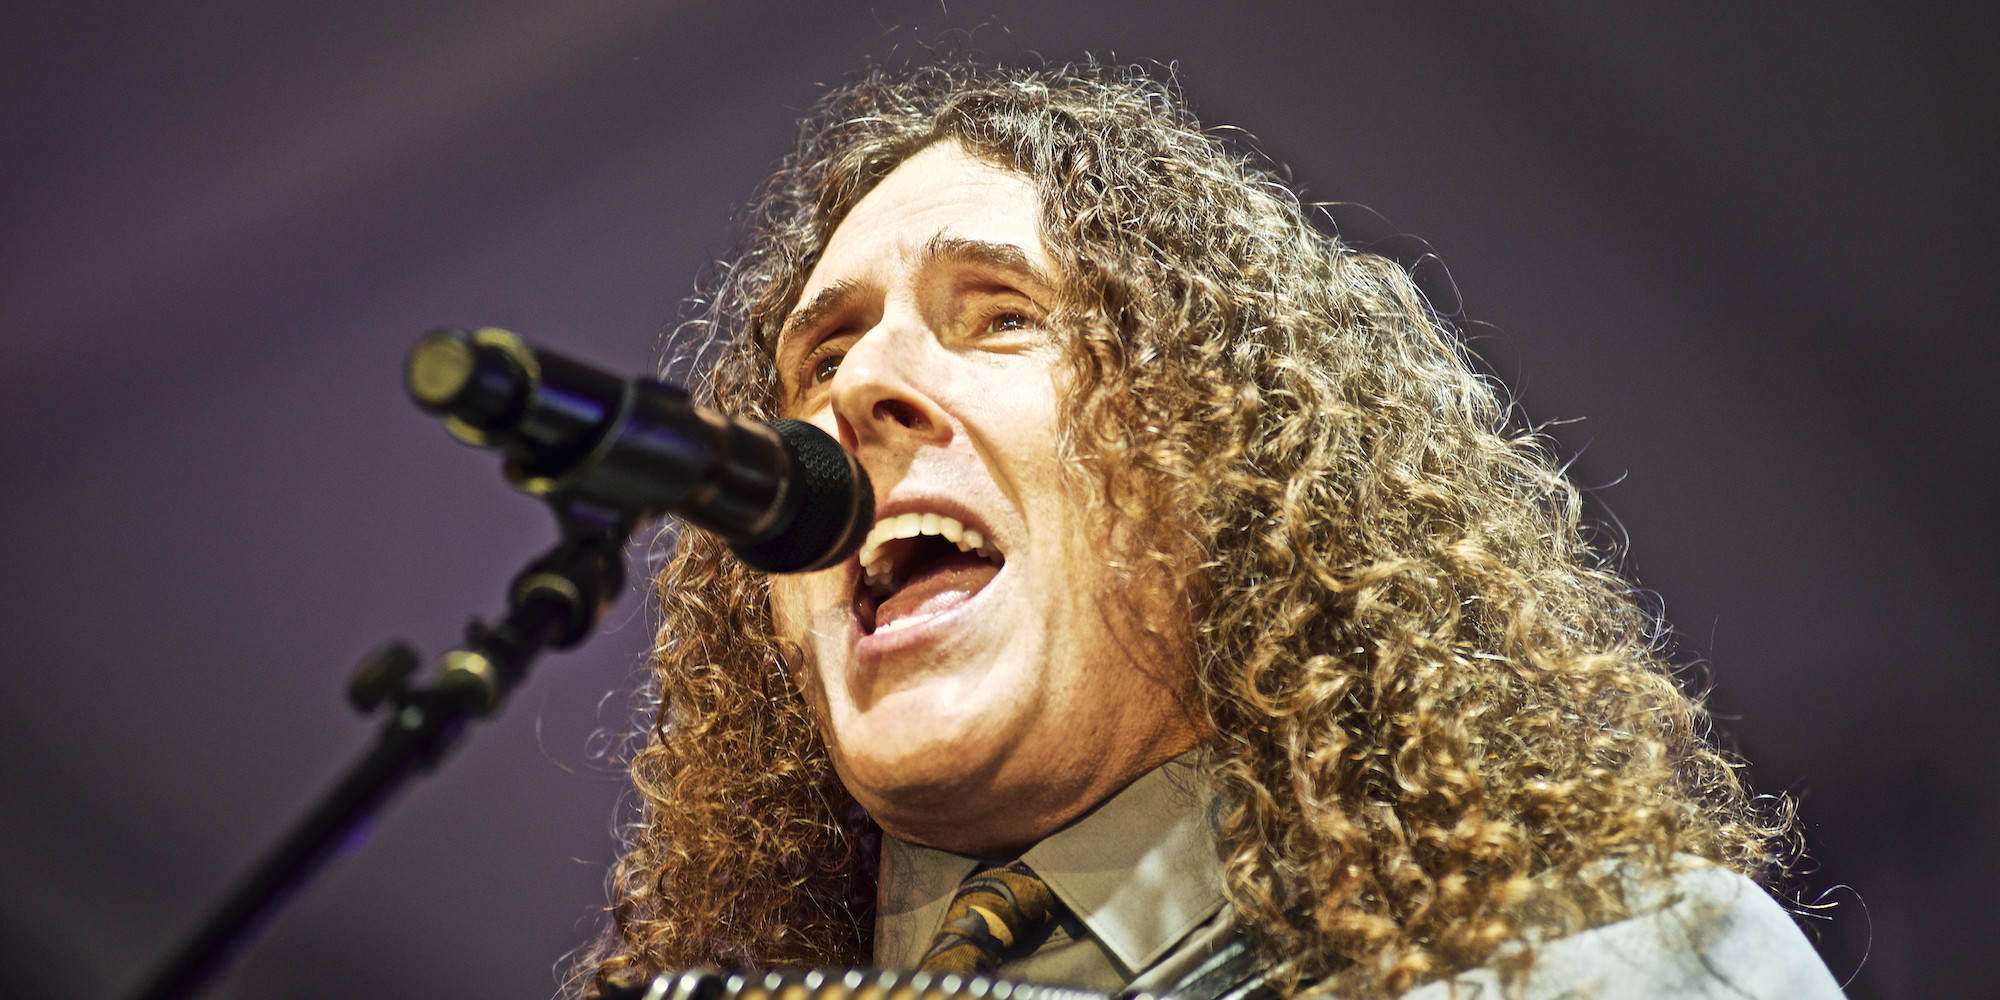 Weird Al Yankovic Pics, Music Collection